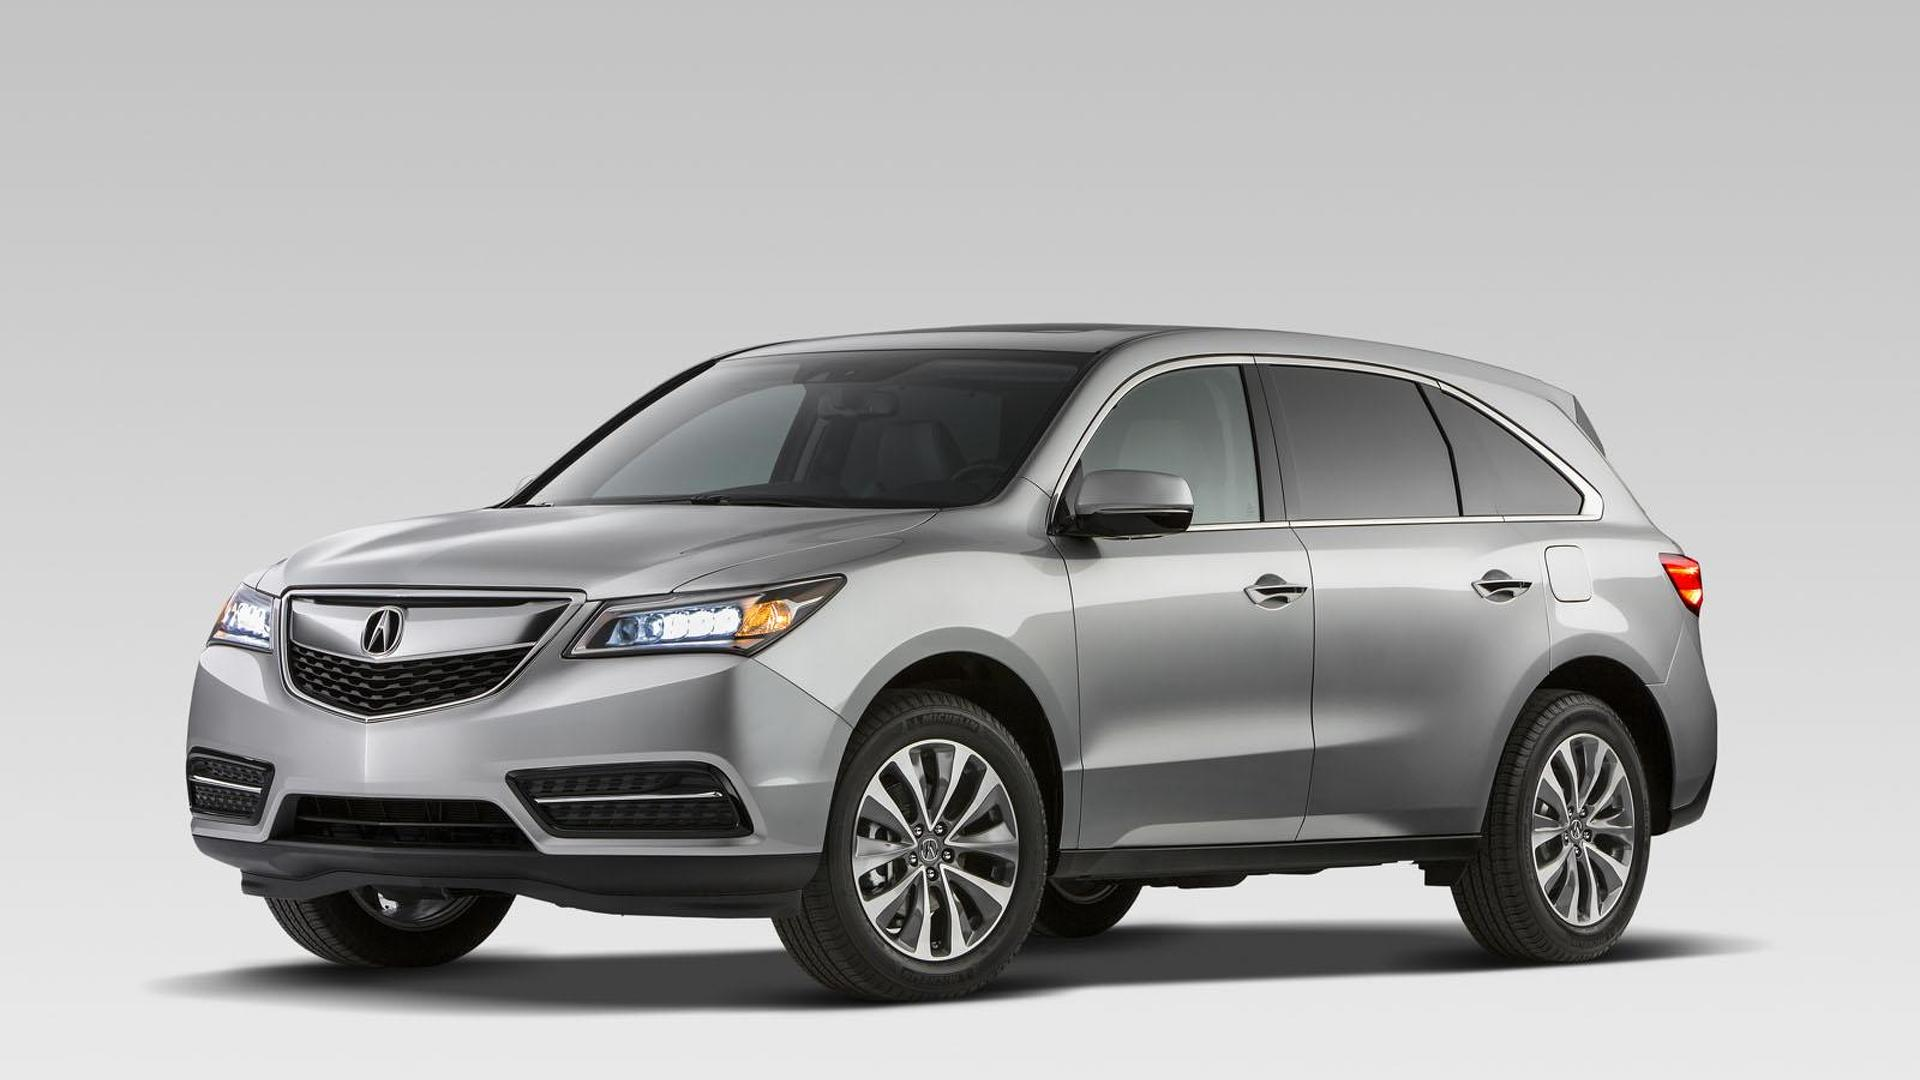 2014 Acura MDX starts from 42,290 USD